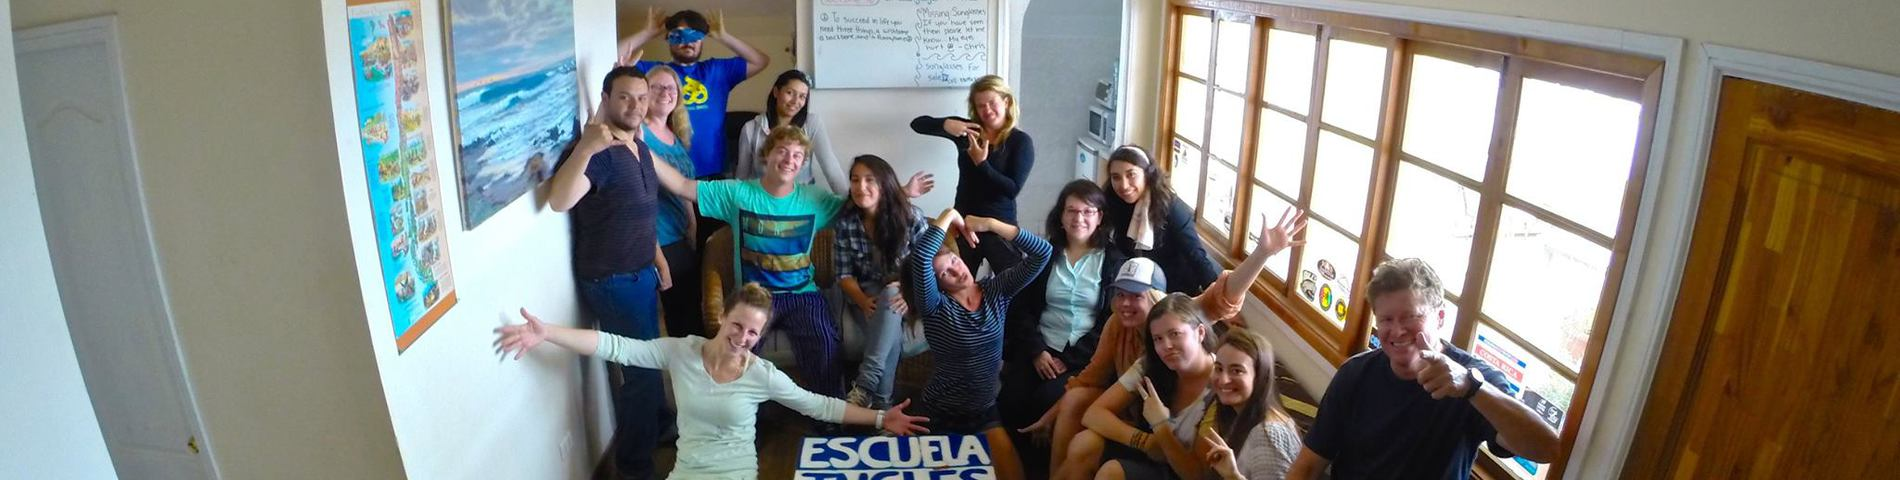 Pichilemu Language School bild 13